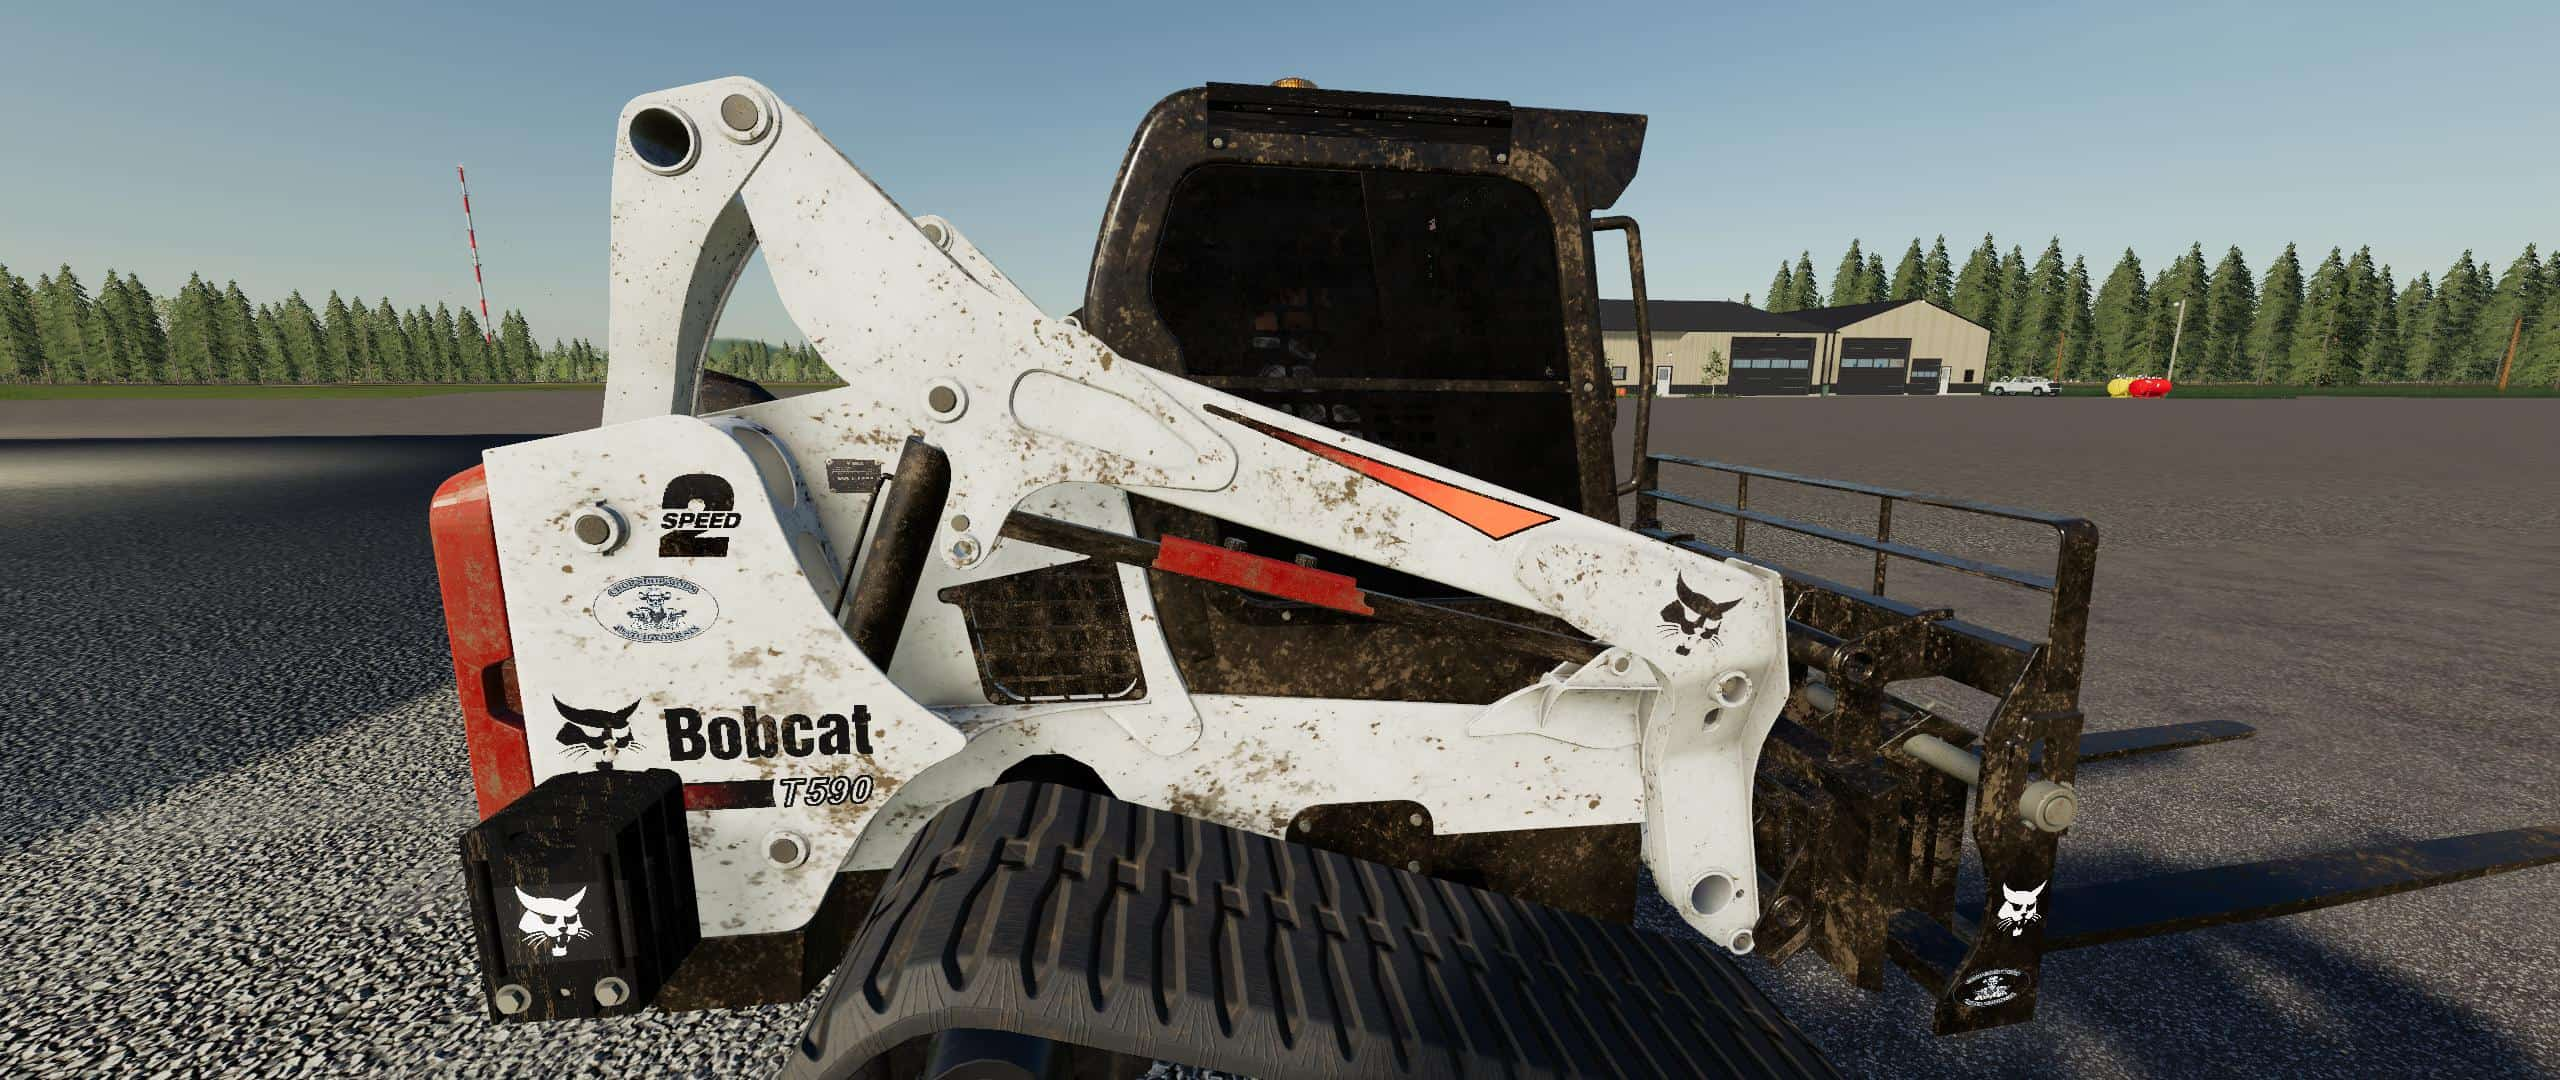 FS19 CSM Bobcat 590 Series Skid Steer Pack v1 1 0 - Farming